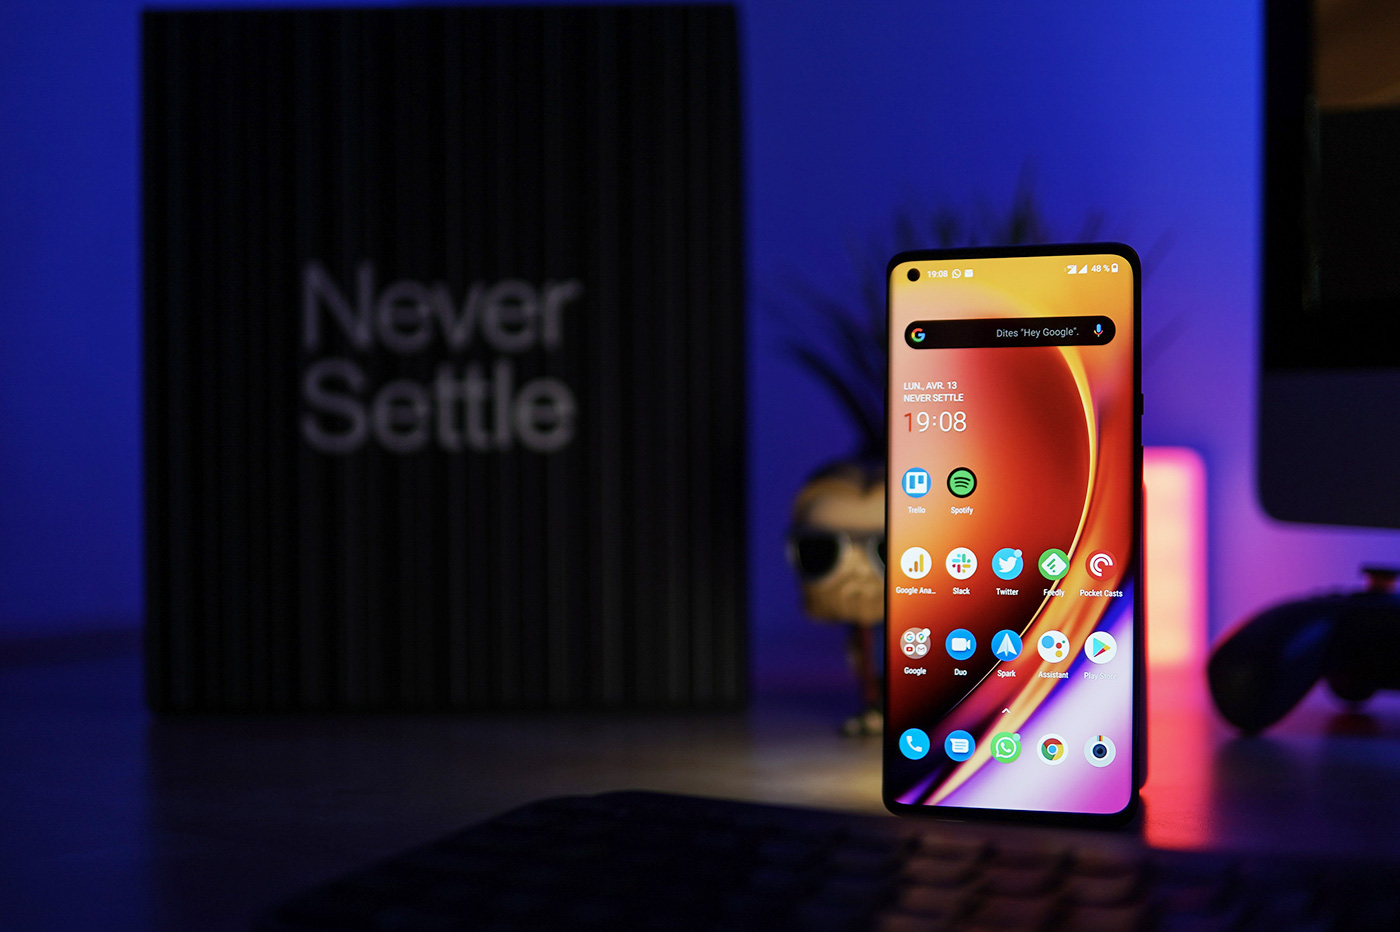 The display of the OnePlus 8 Pro